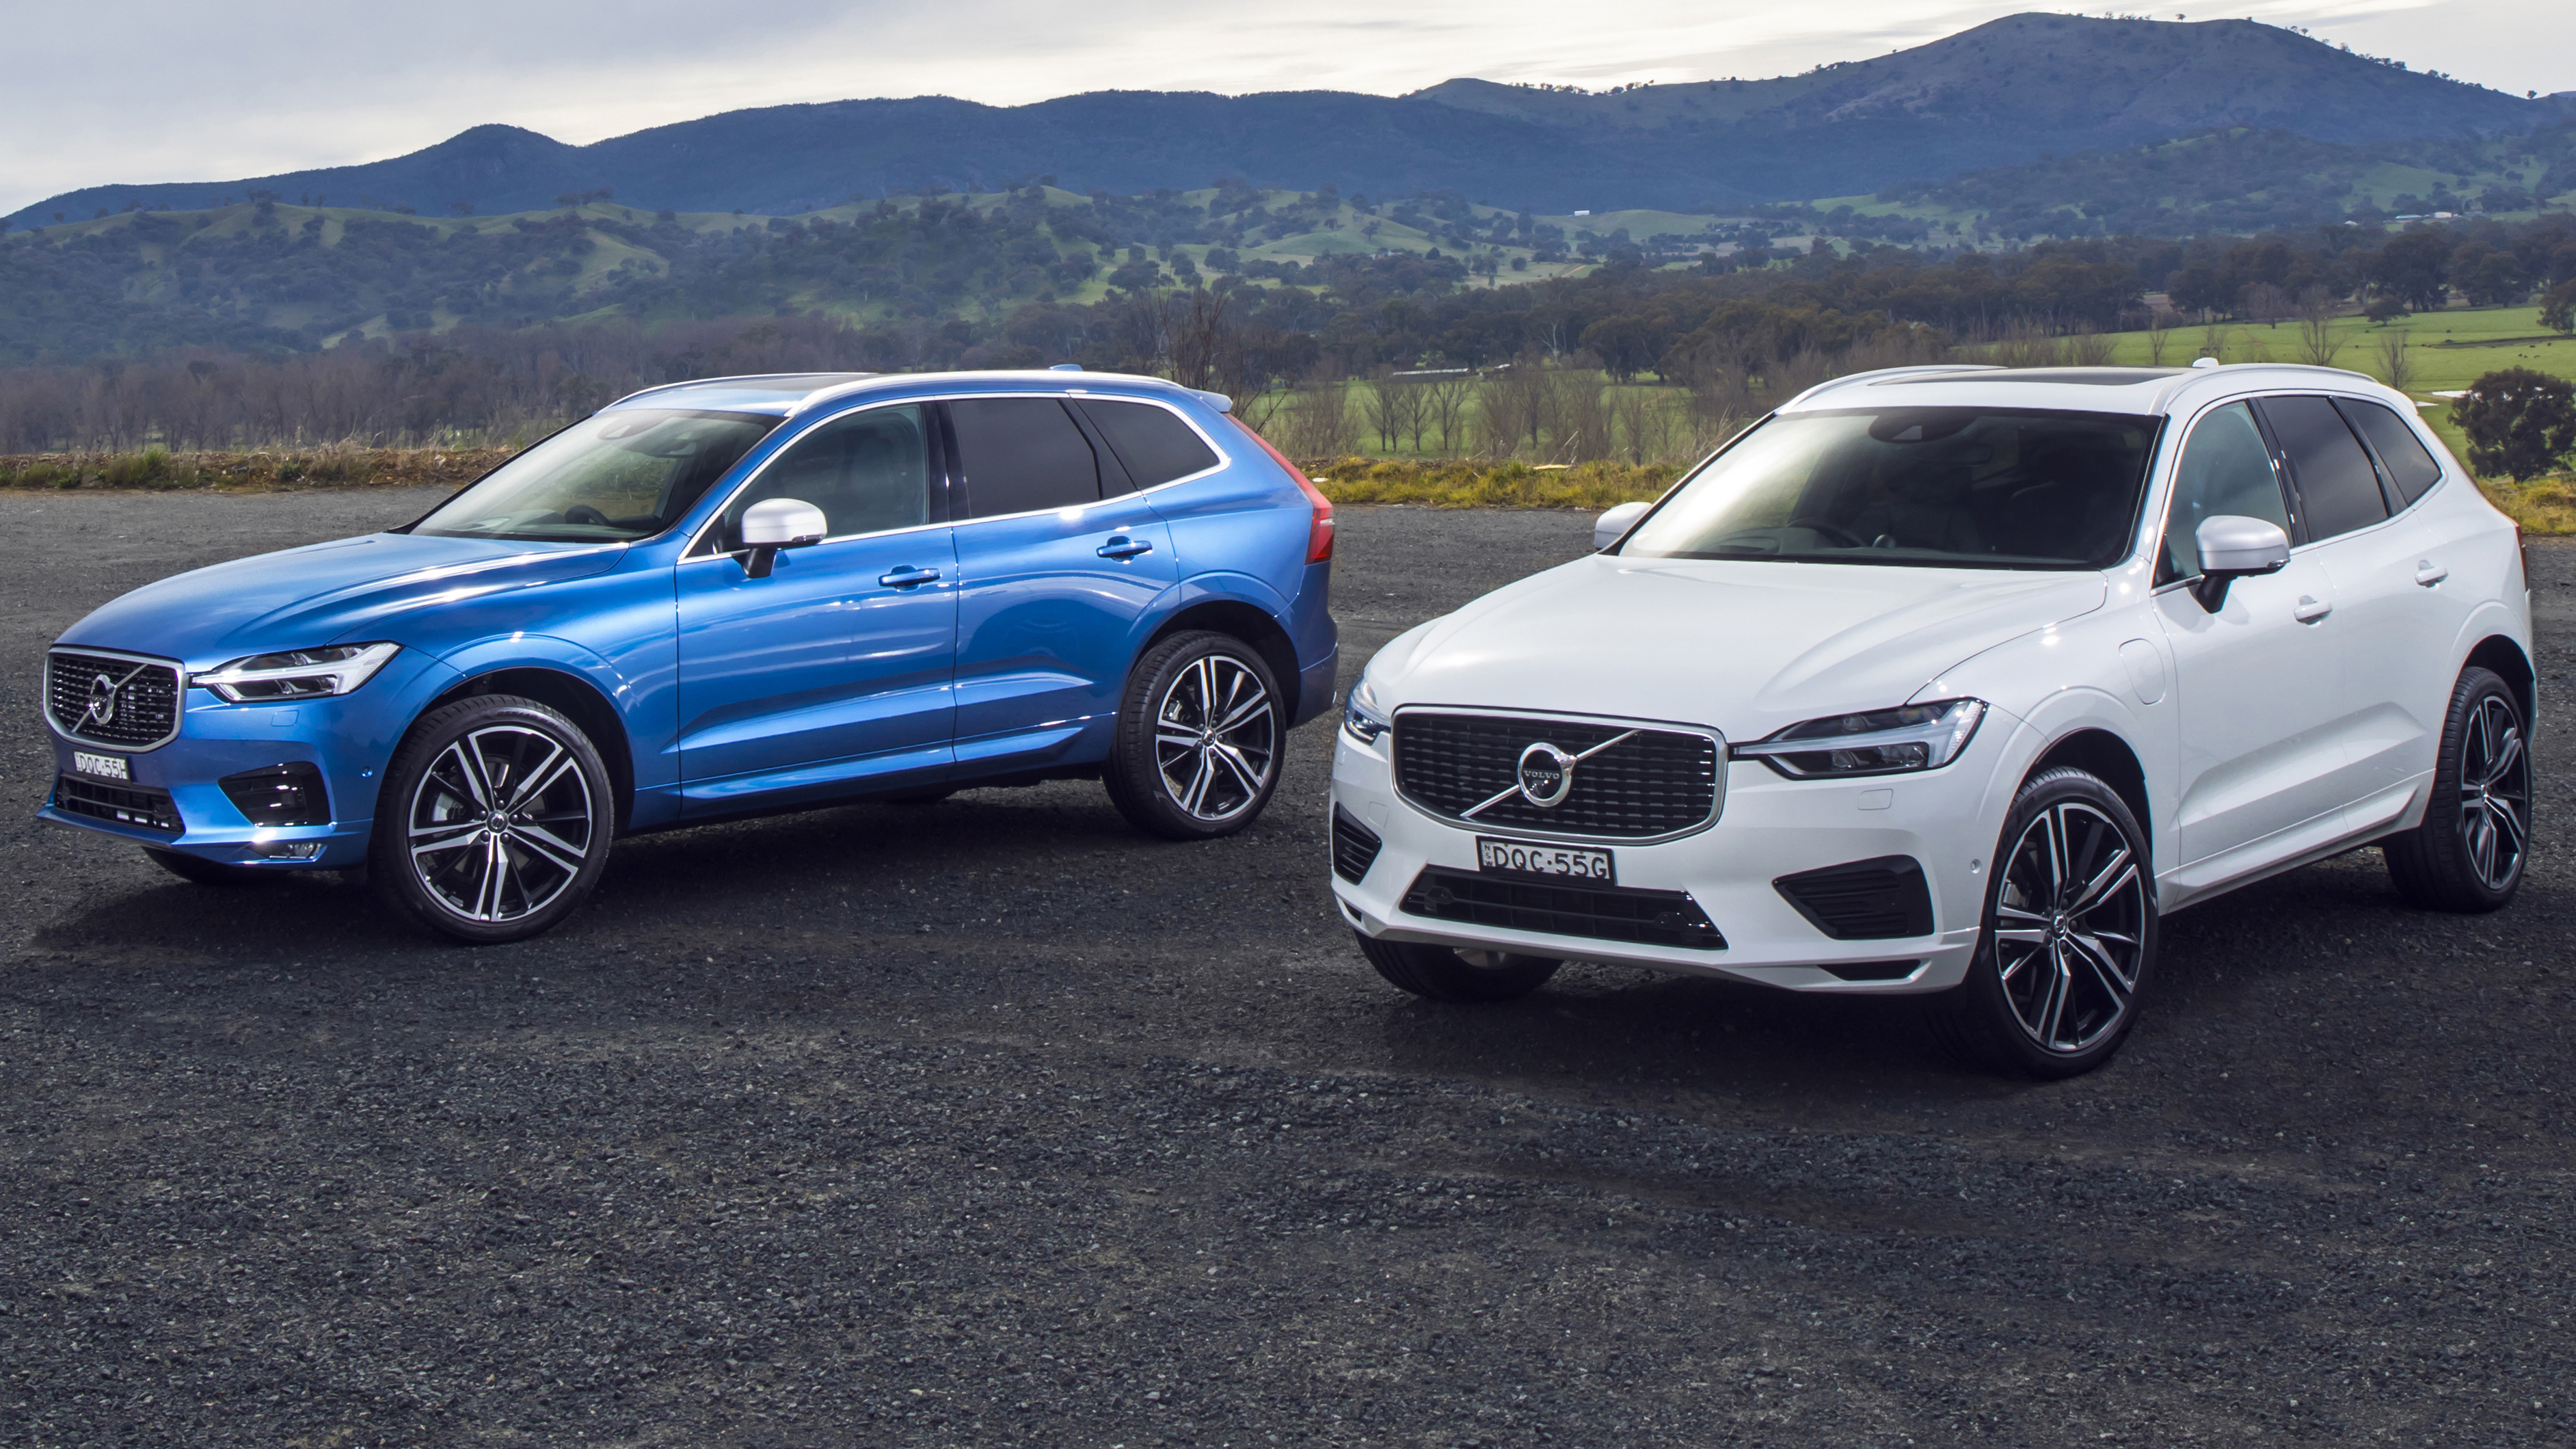 Volvo's XC60 has helped the brand's sales boom in 2018.